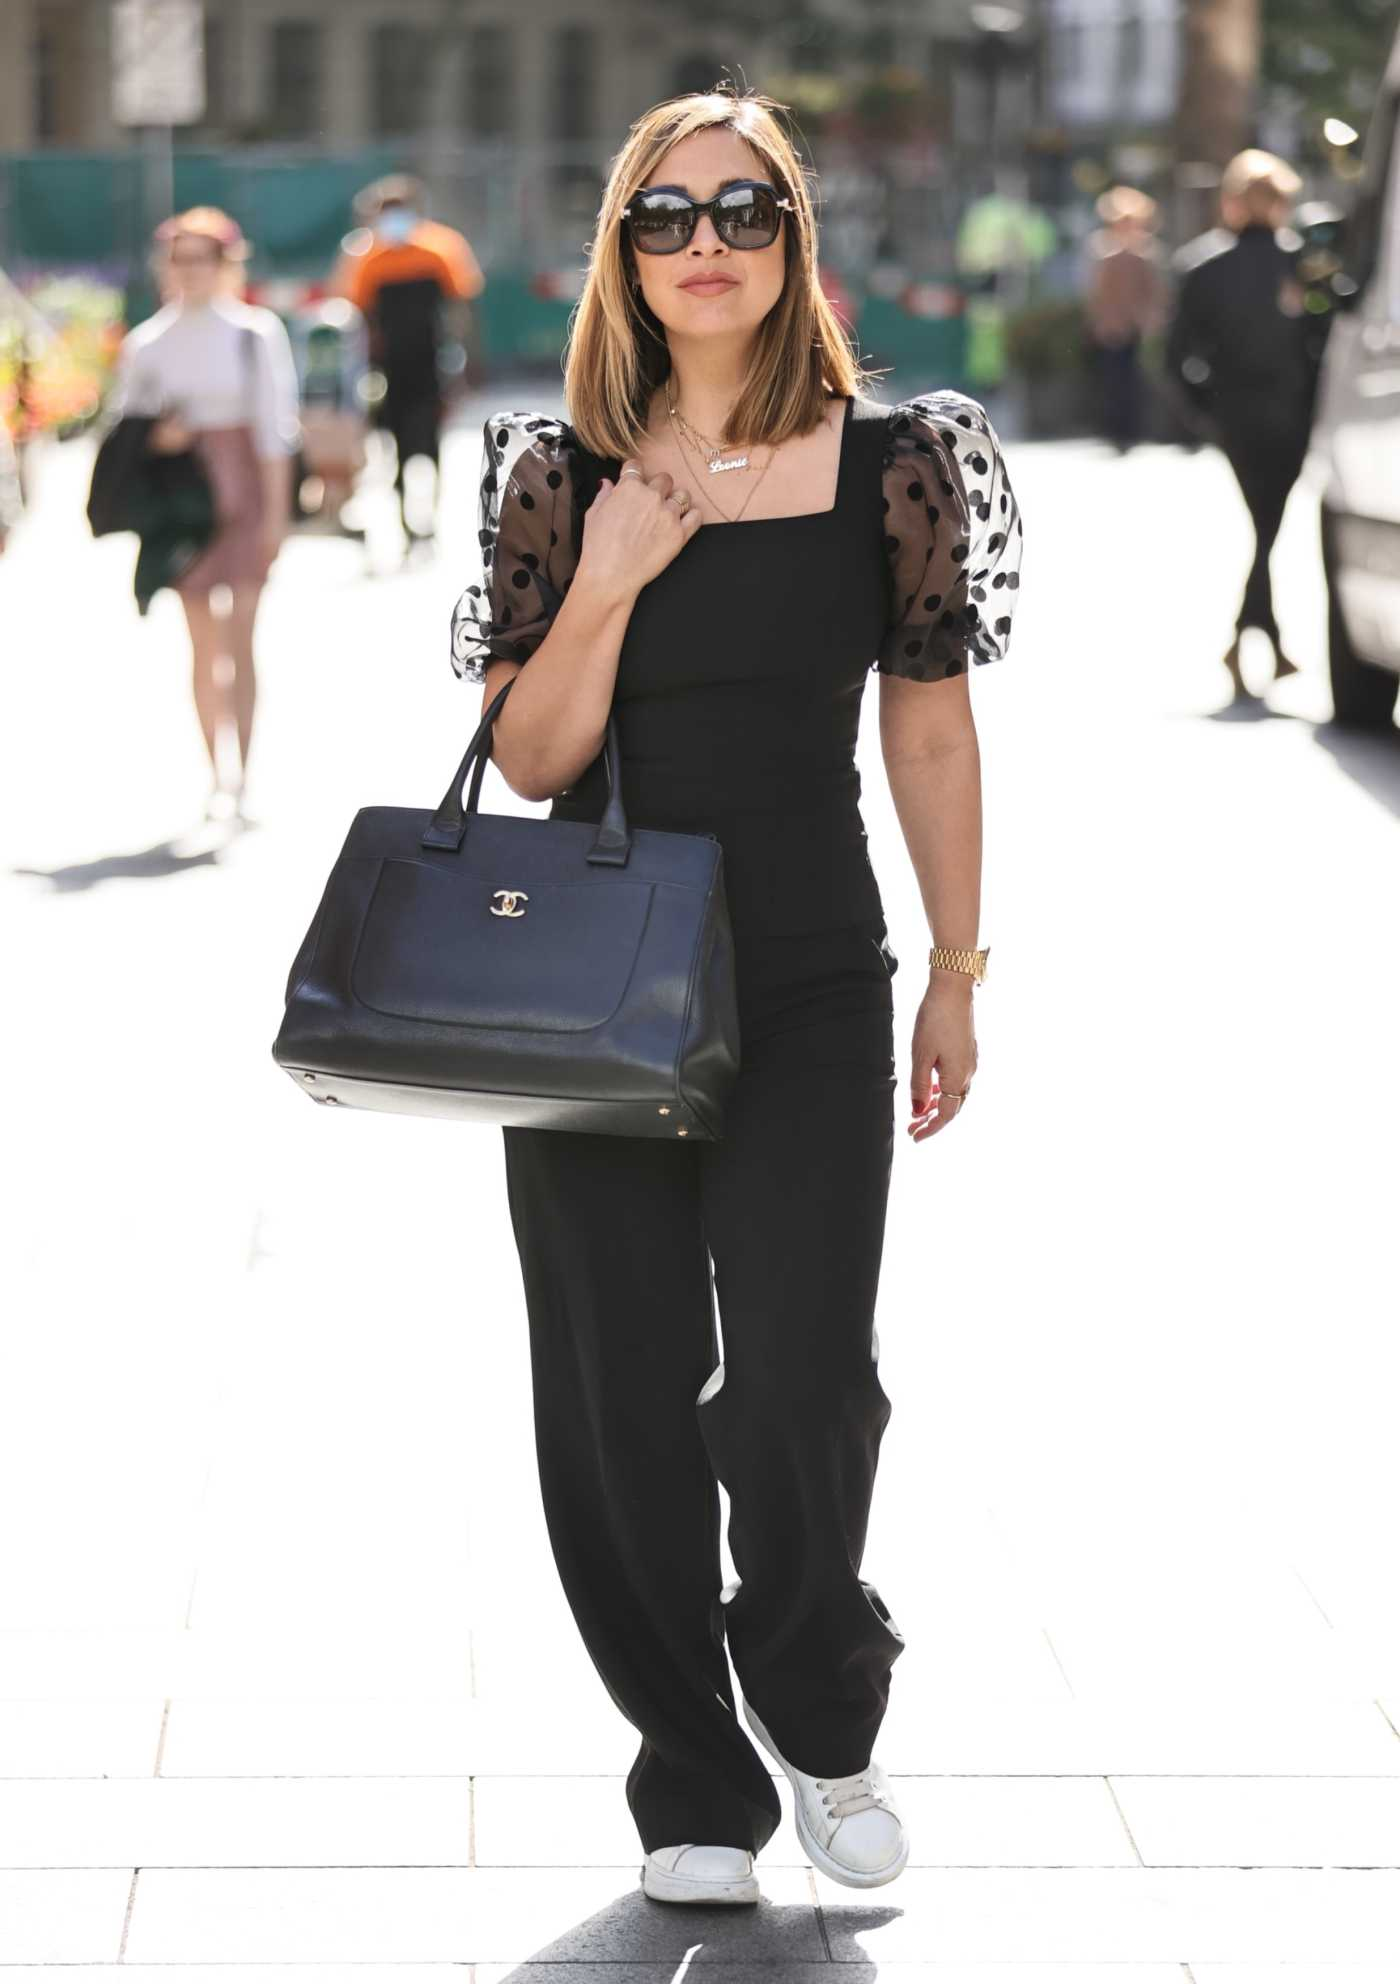 Myleene Klass in a Black Sheer Lace Top Was Seen Out in London 08/04/2020